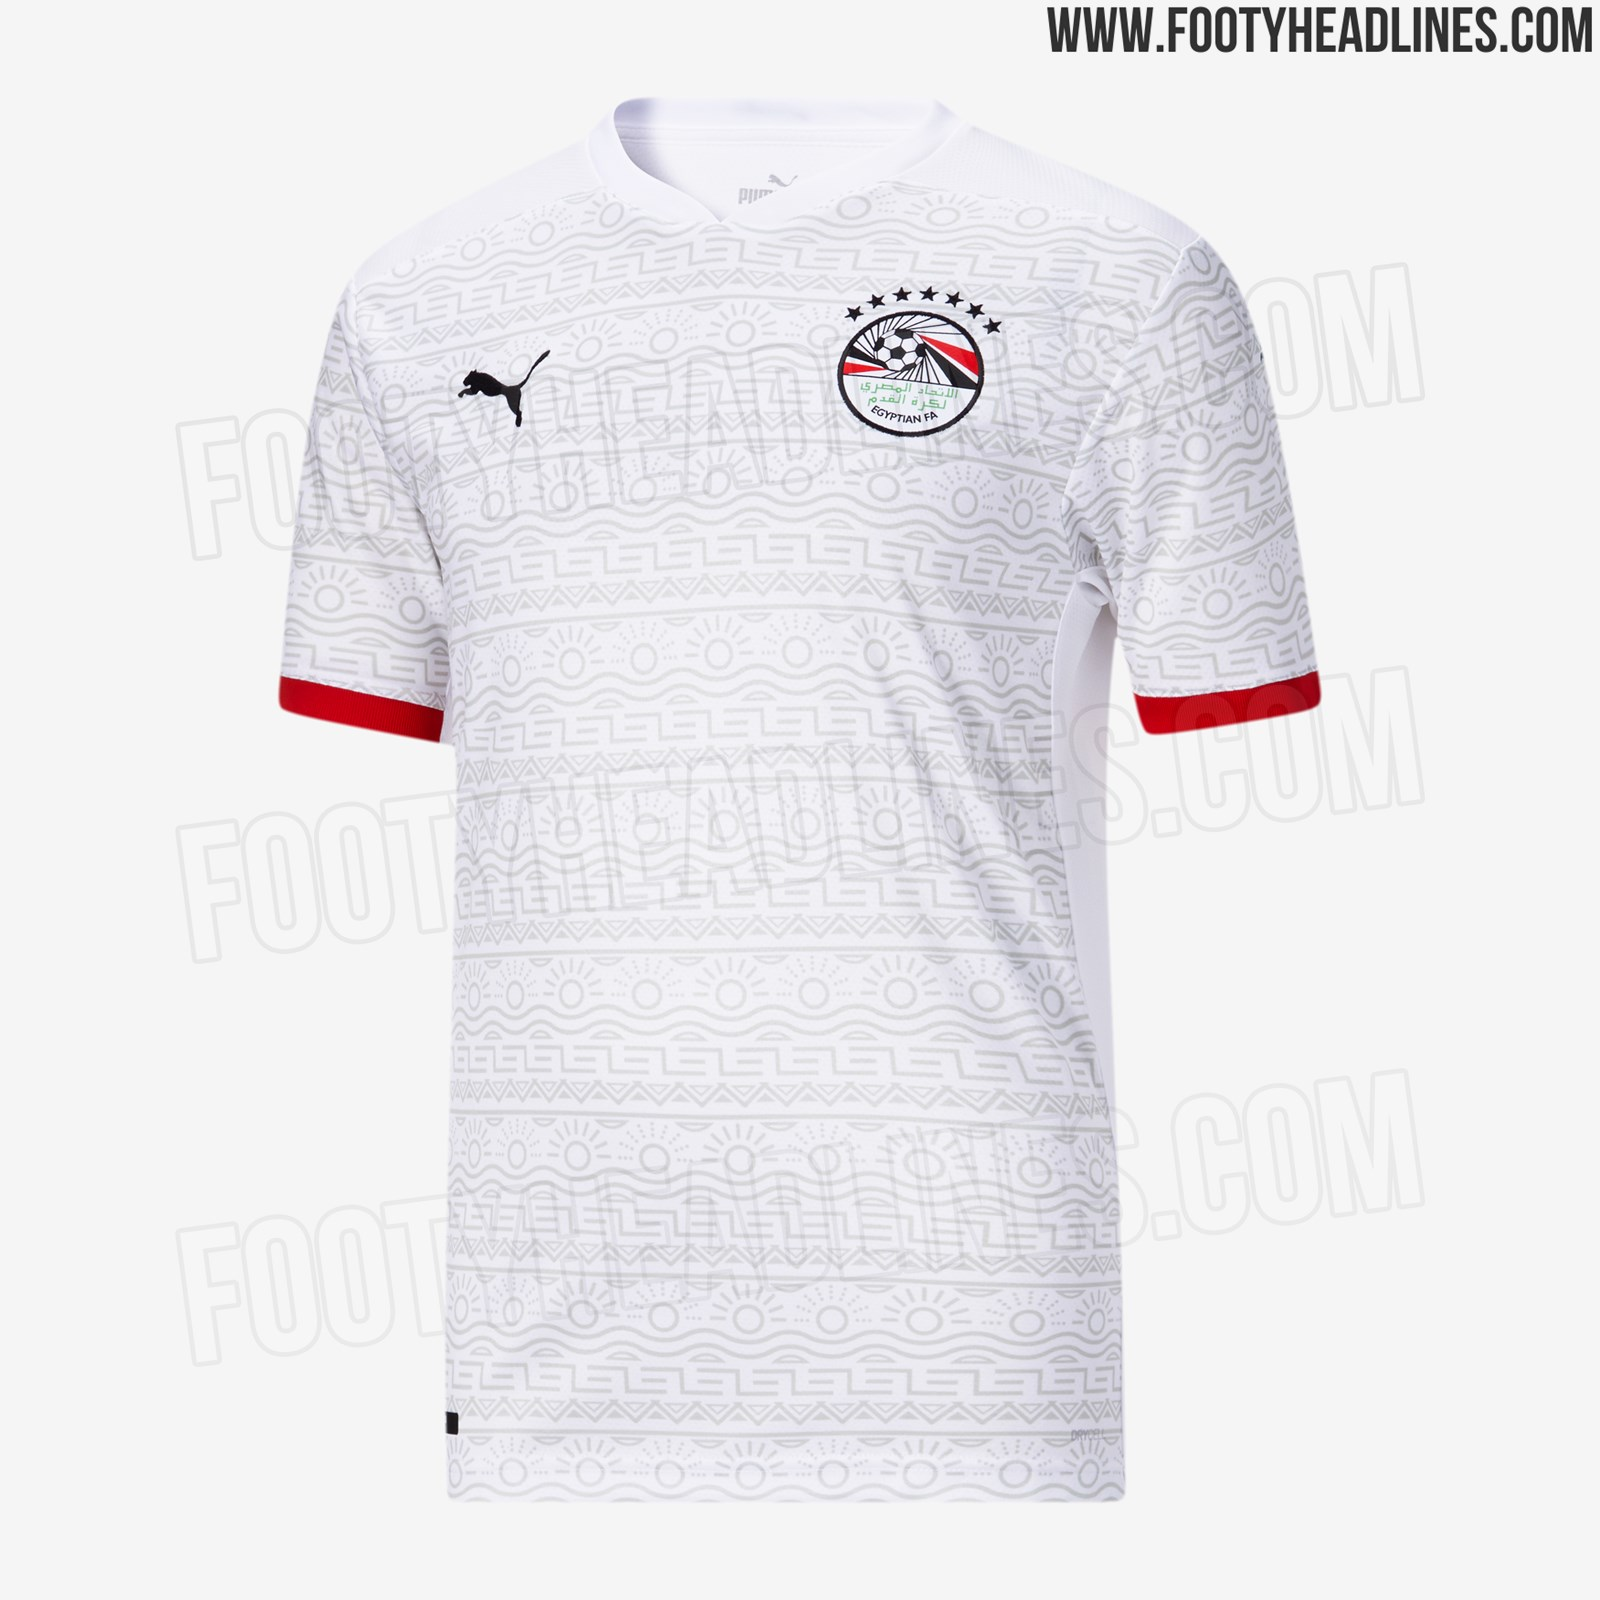 egypt-2020-home-away-kits-4.jpg